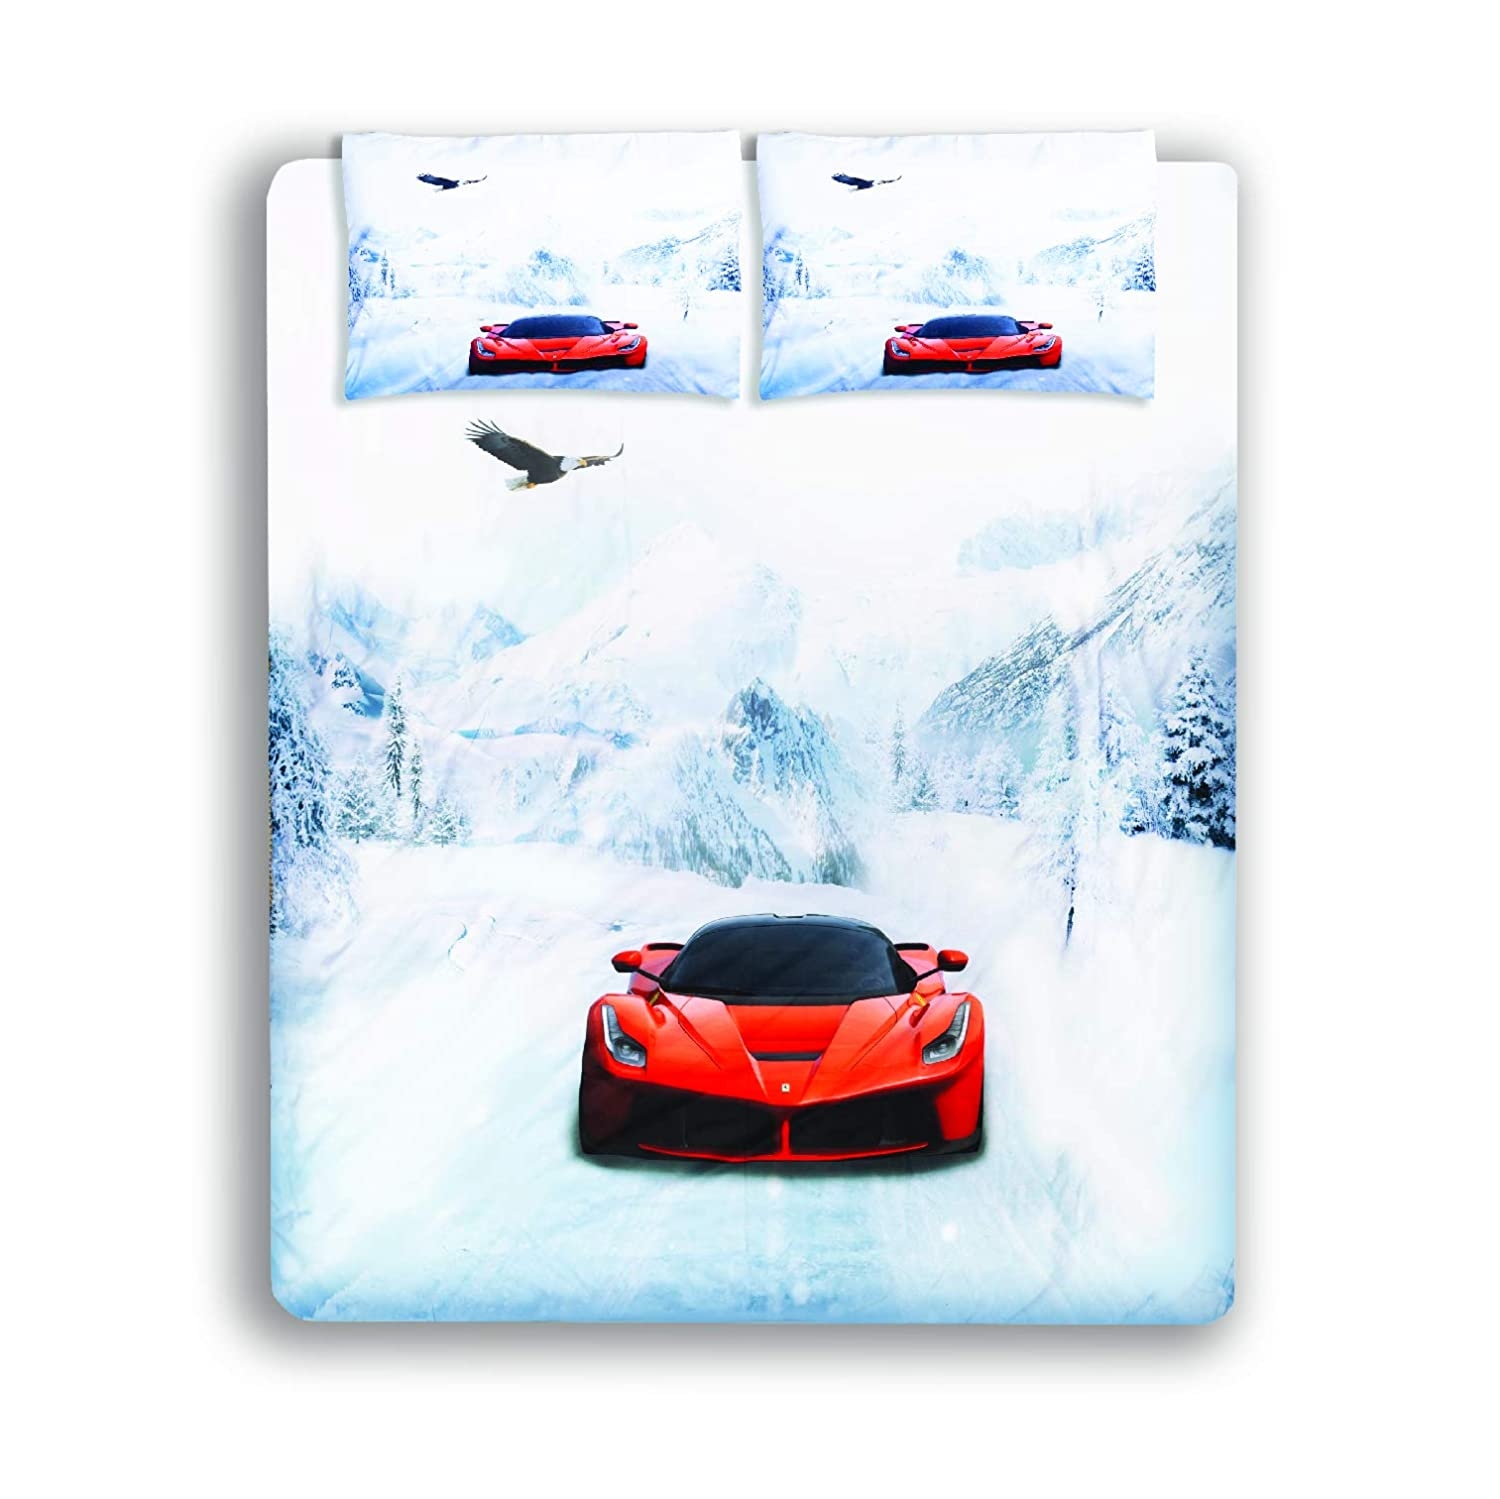 Caledonian Products Kids Race Sports car Bedding Set, 3 Piece Brushed Microfiber Duvet Cover Set for Boys Girls Teenagers King Queen Twin with Pillow Shams. Comforter not Included.